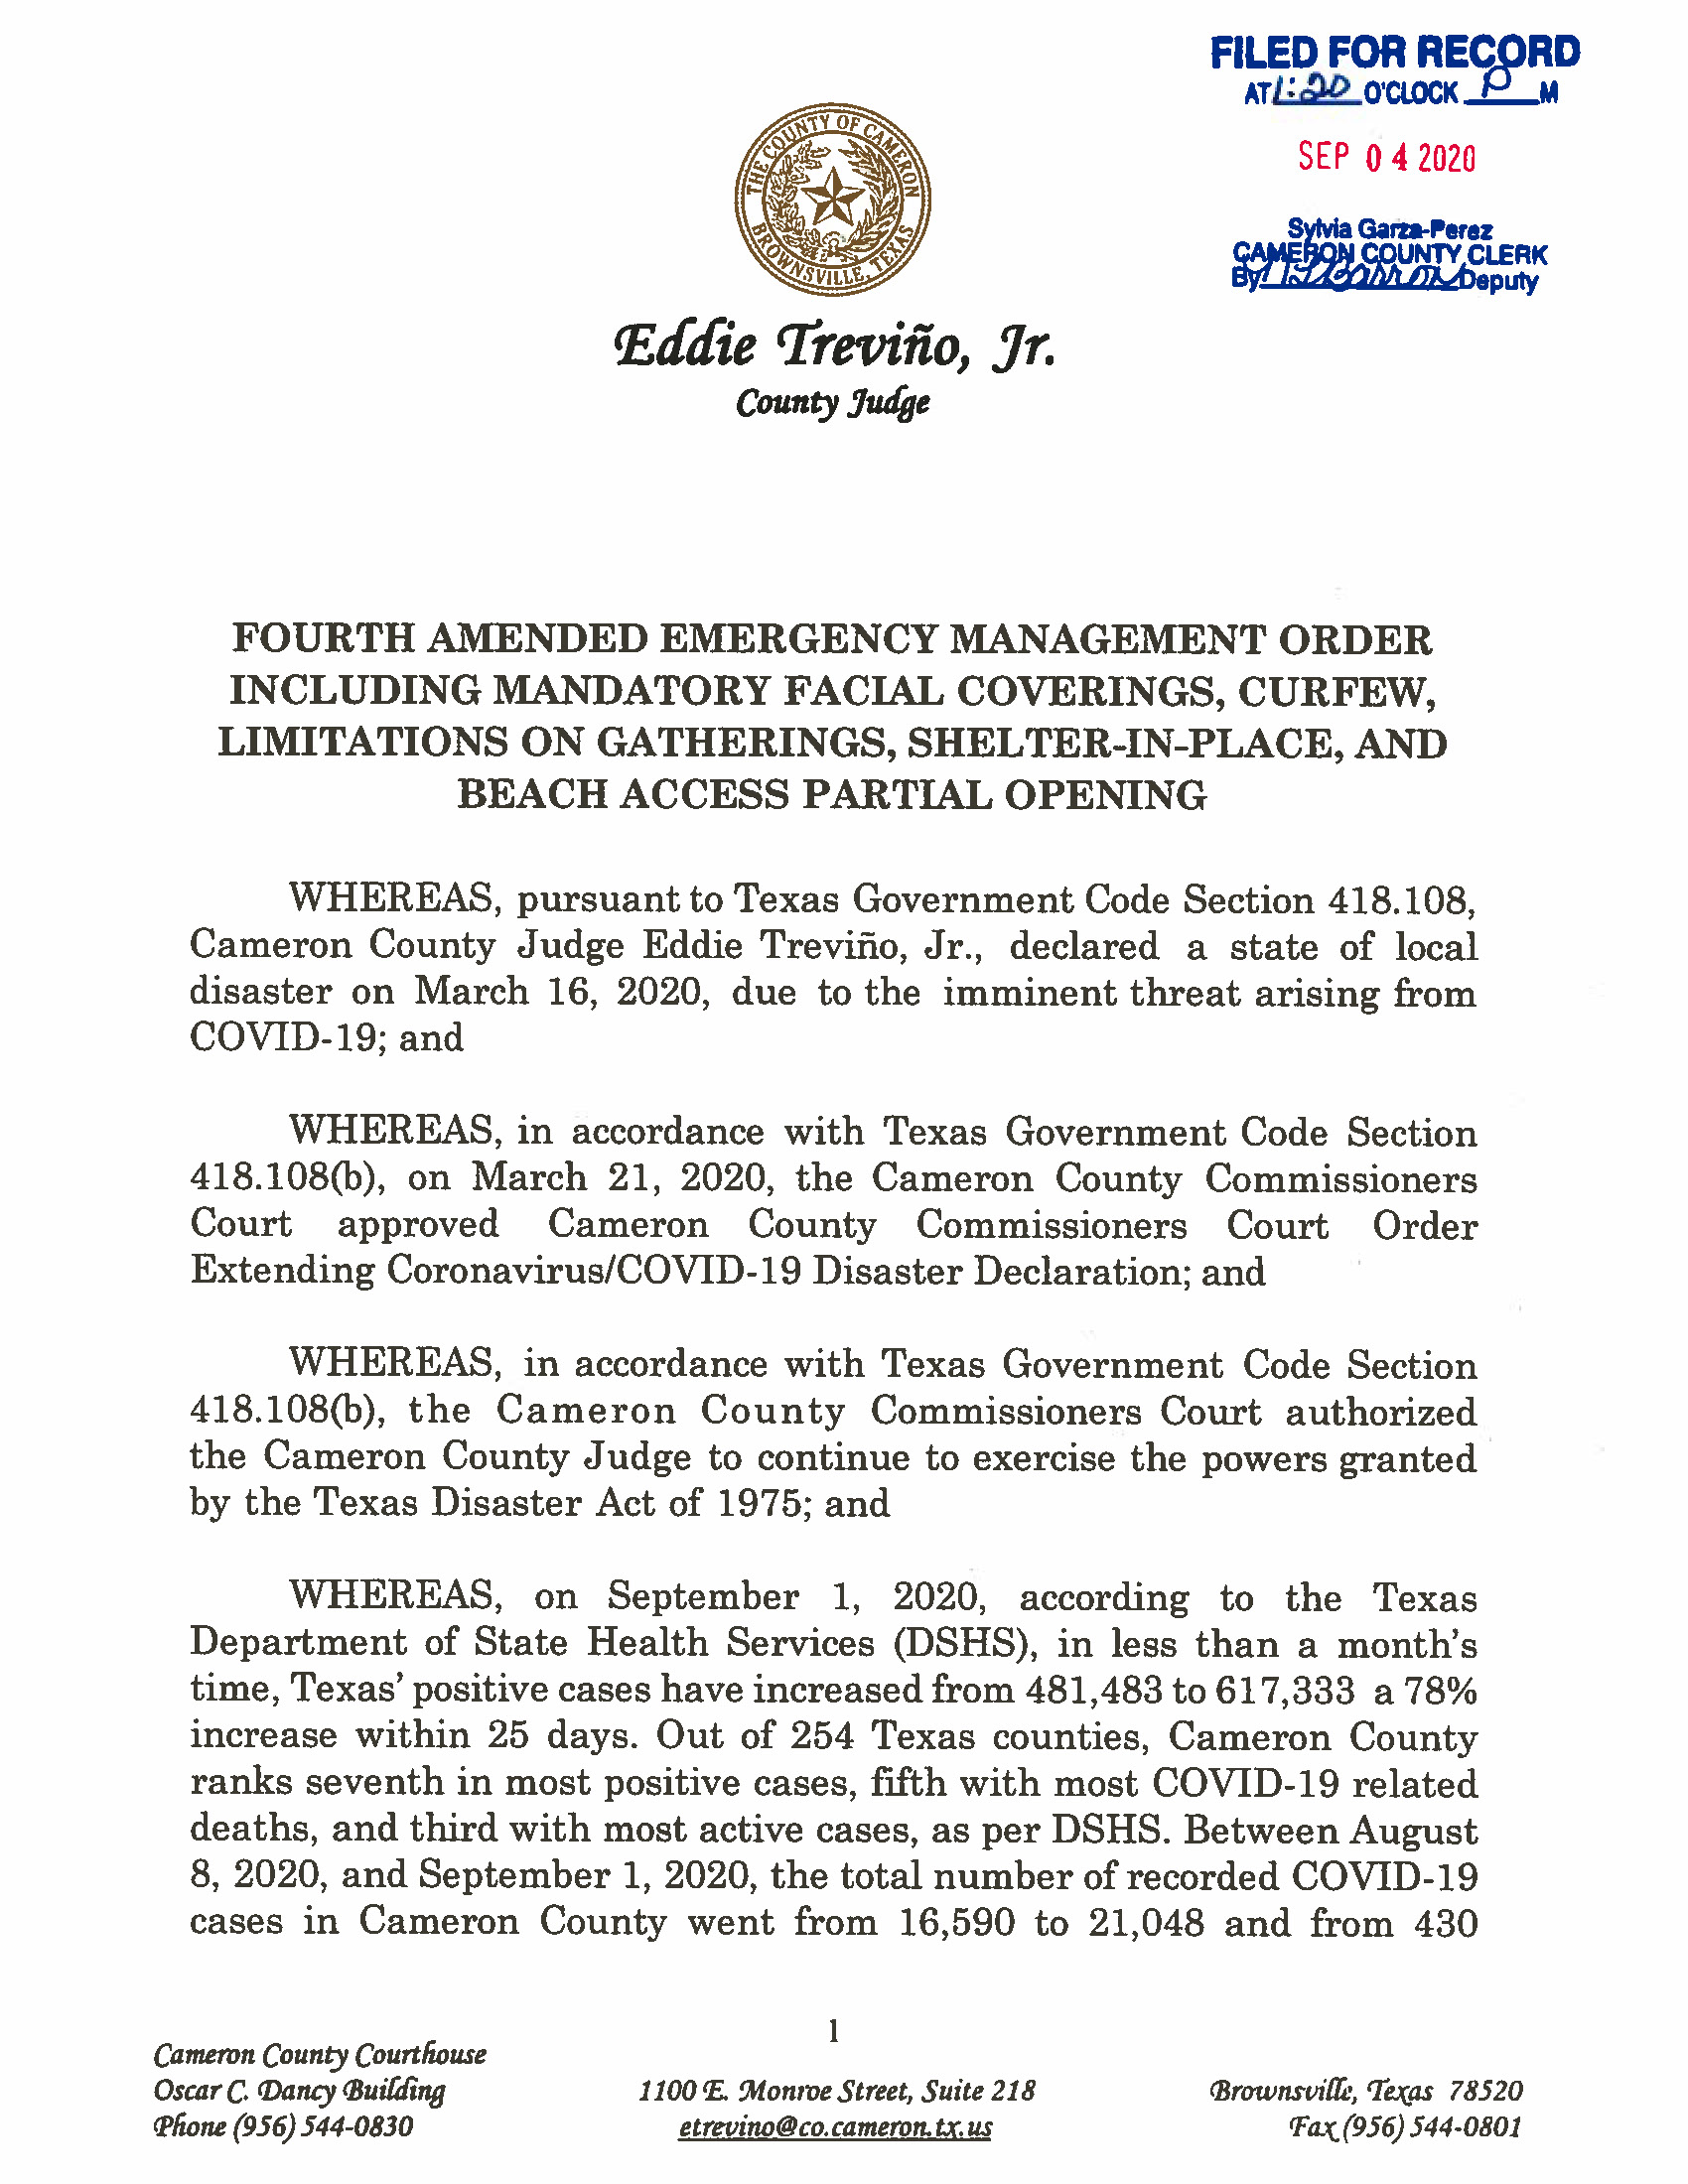 09.04.2020 ORDER Fourth Amended Emergency Management Order Page 01